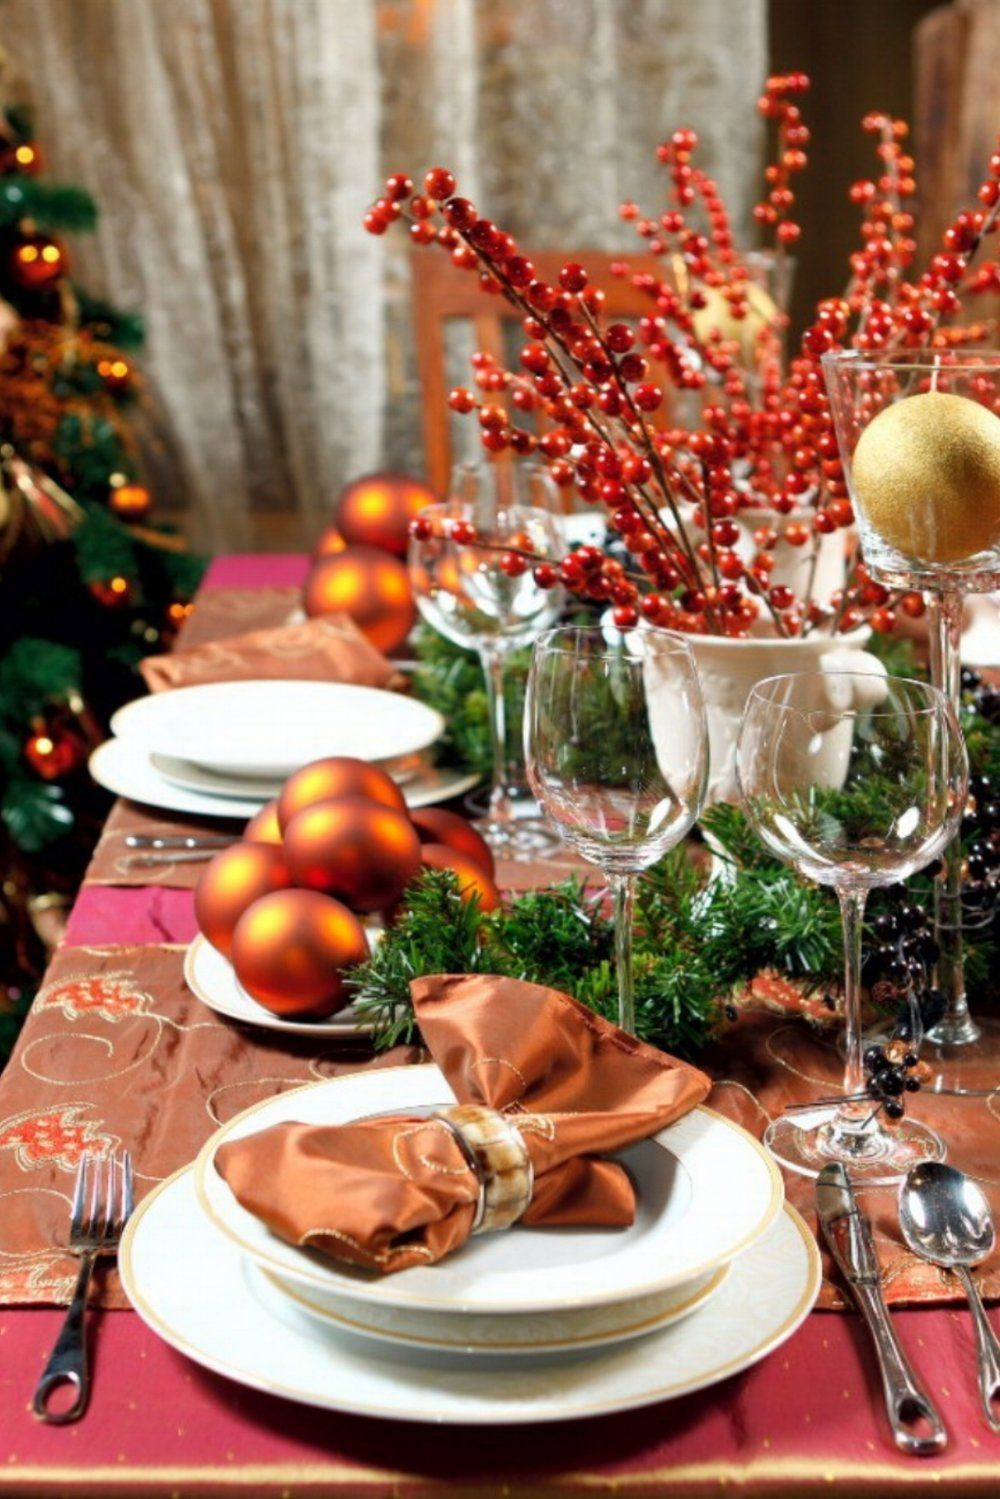 5 Ideas On How To Prepare The Best Dining Table Decor For Christmas In 2020 Christmas Table Decorations Christmas Table Christmas Dinner Table